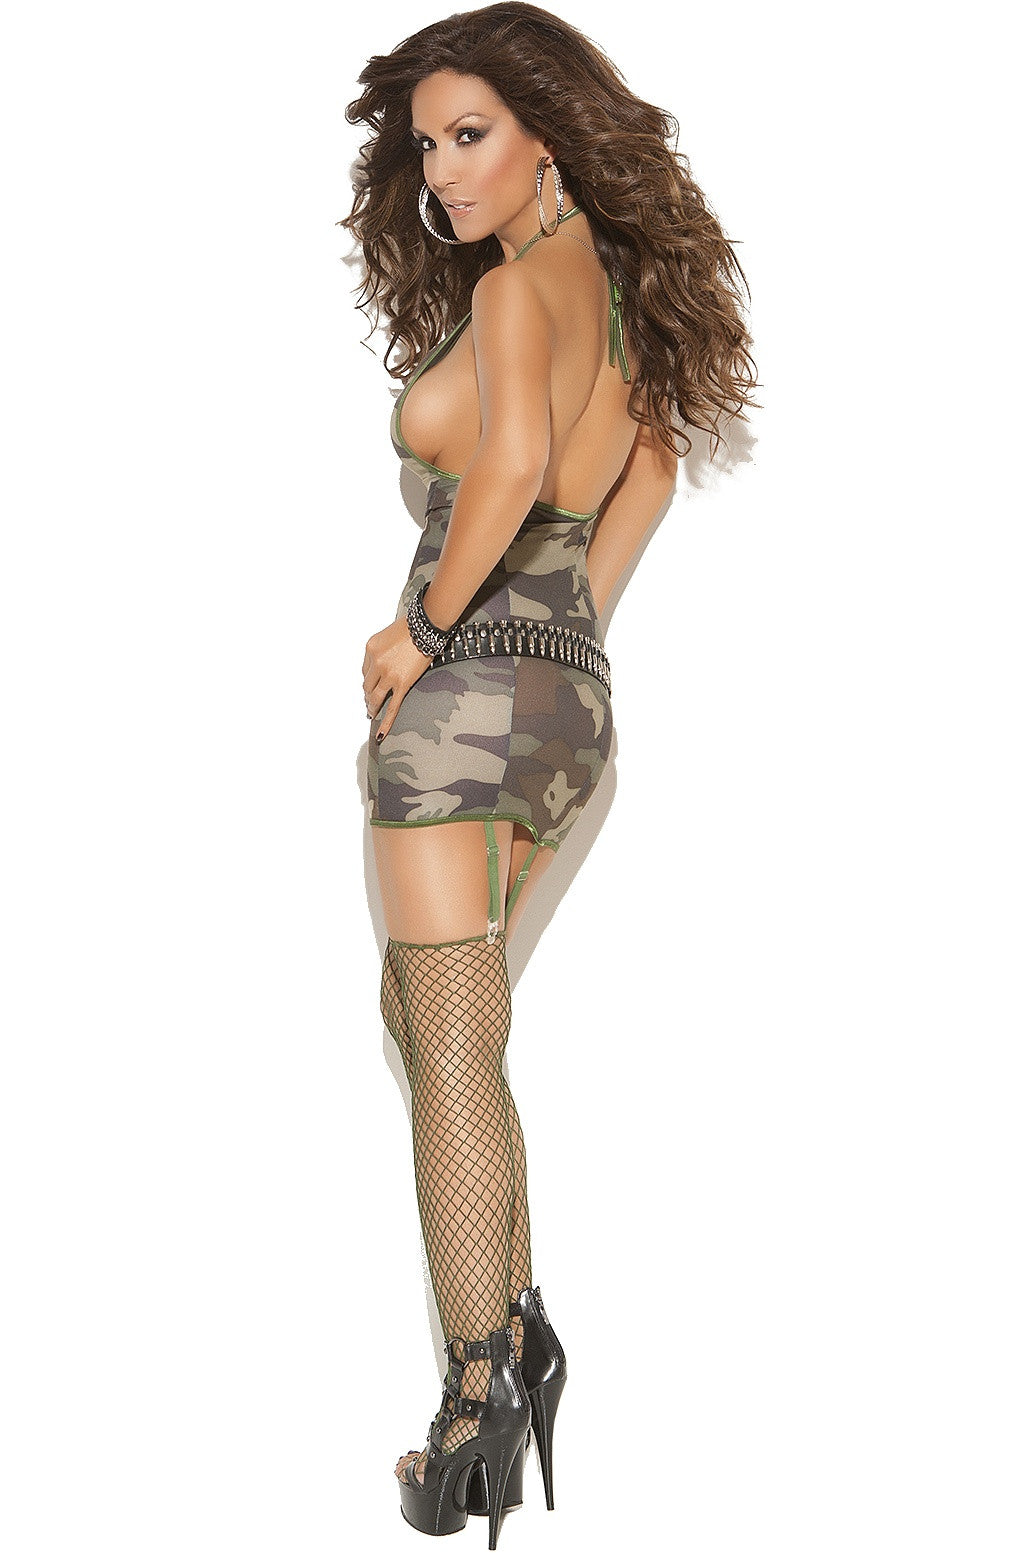 EM-8766 CAMOUFLAGE Mini dress - Sexylingerieland  - 2